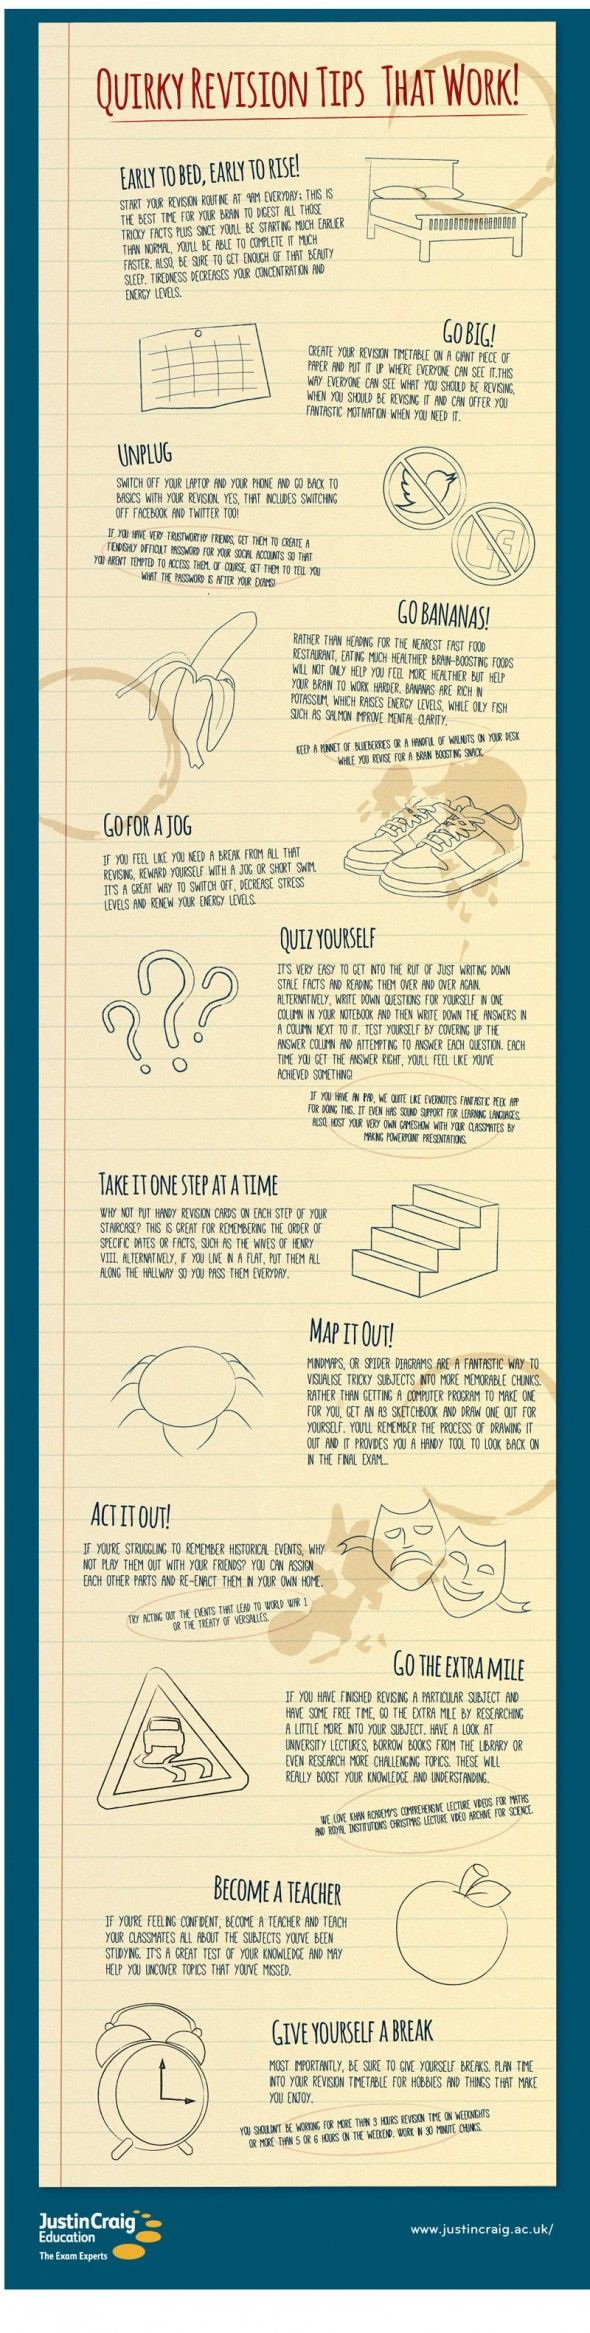 Quirky revision tips ... that work. Try them and see!